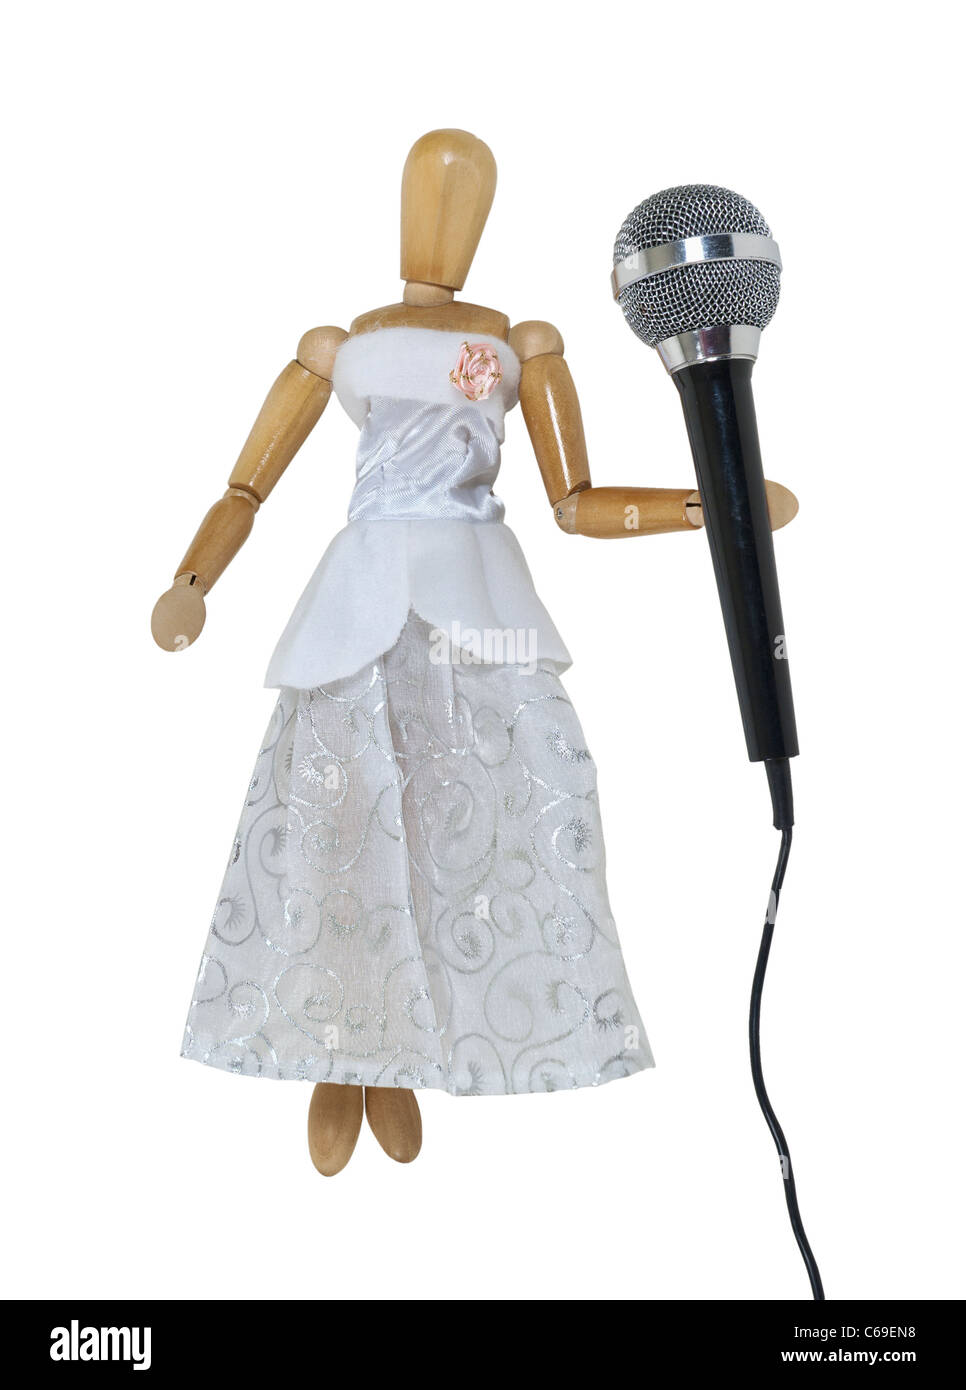 Woman in a formal white dress using an audio microphone used to amplify communication - path included - Stock Image